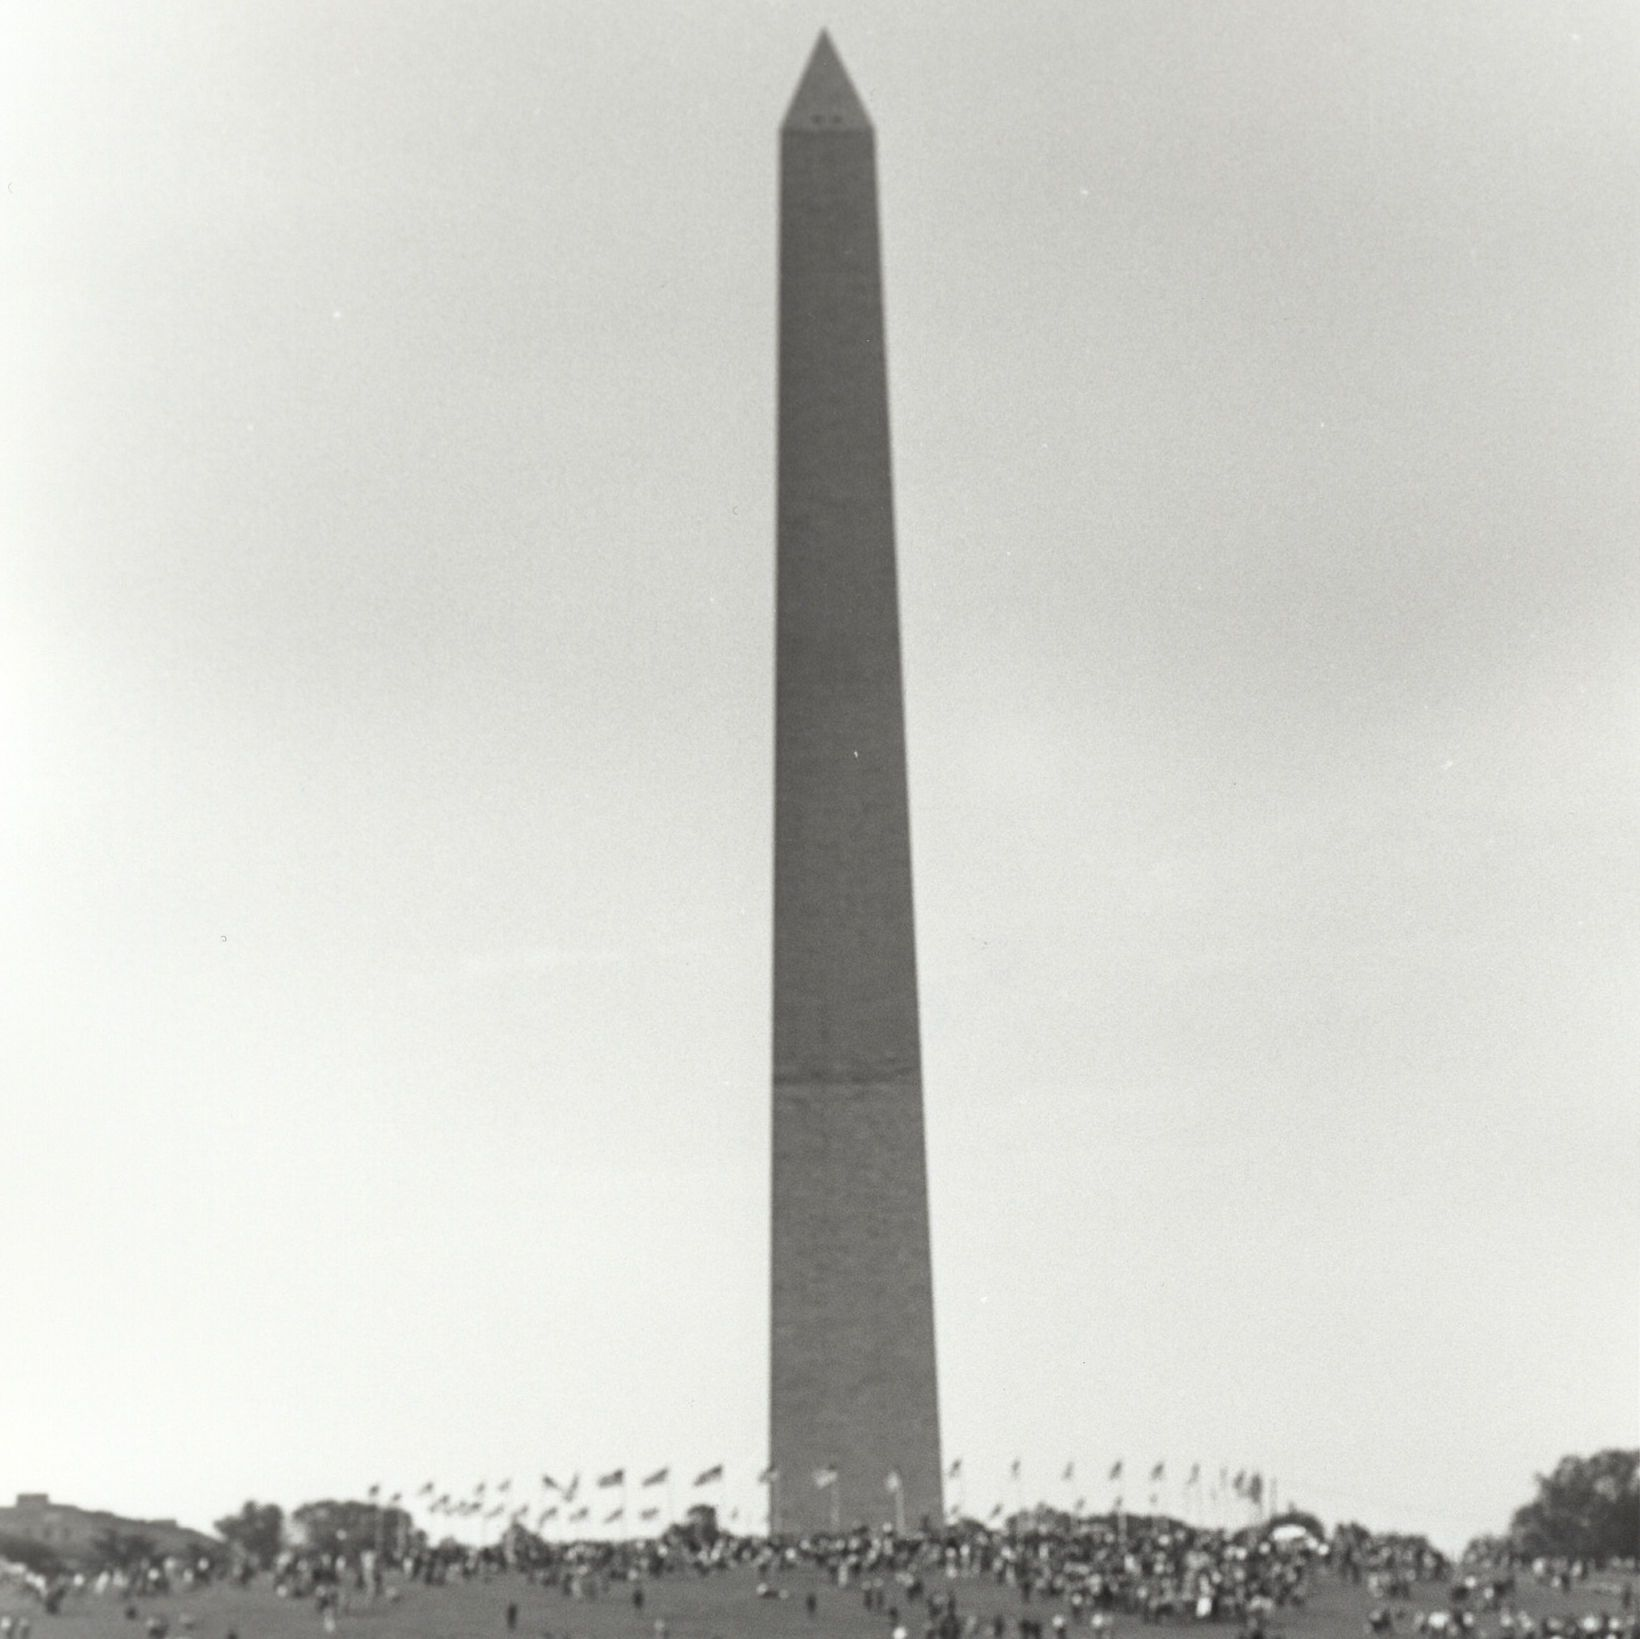 Photograph of Crowd at the Washington Monument during the March on Washington